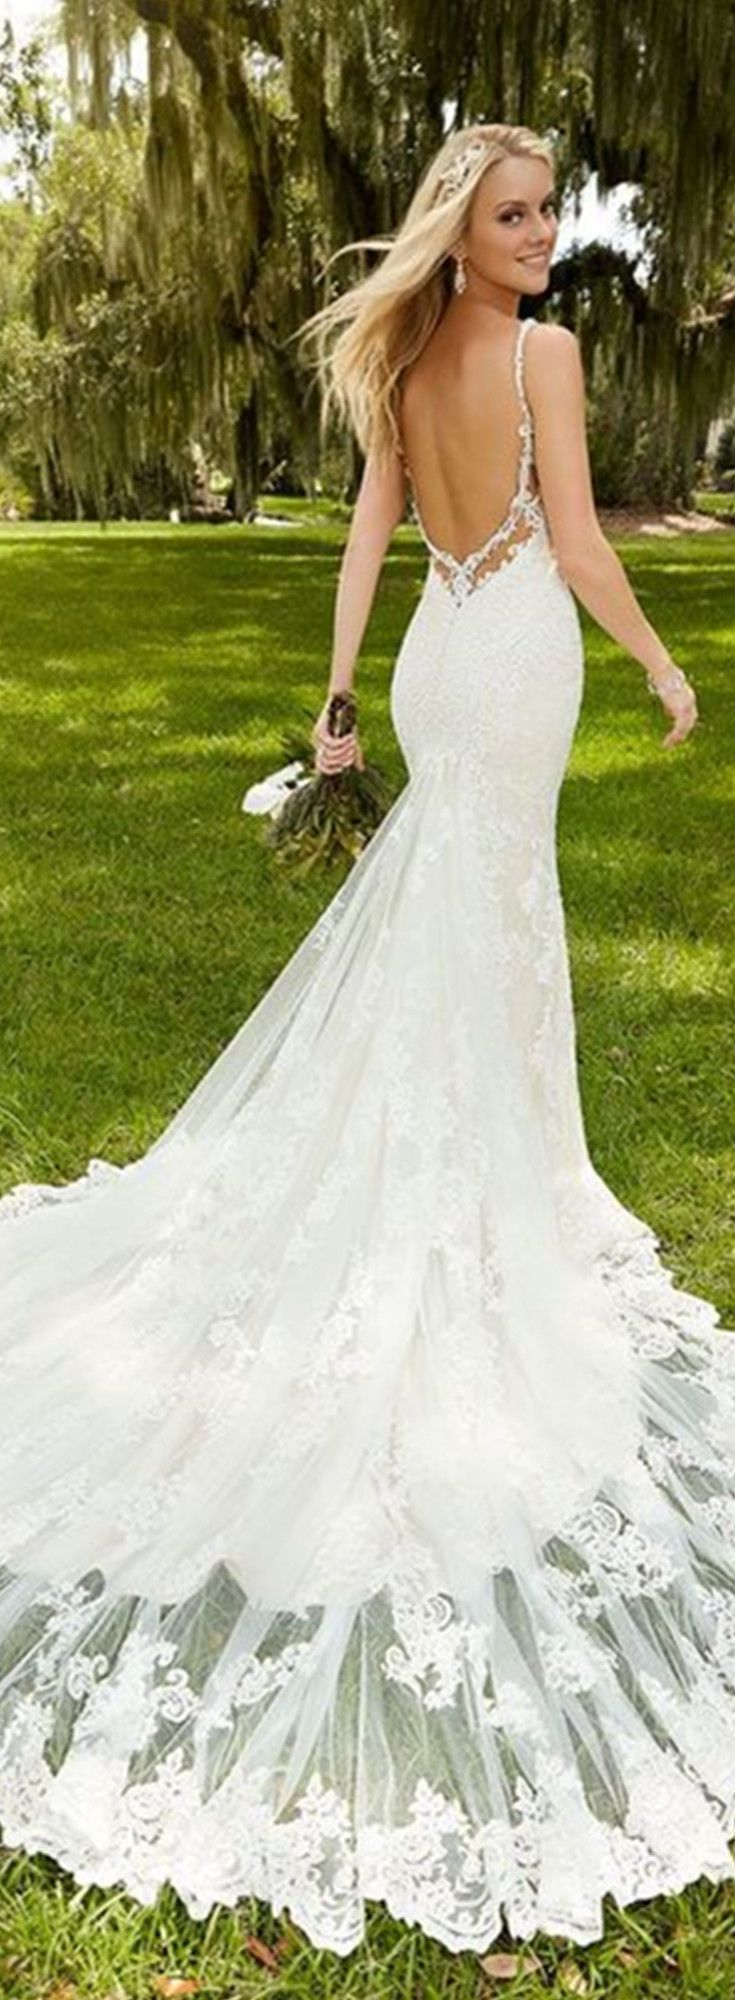 Lace wedding dresses 2018 Awesome 74 Unique & Sexy Wedding Dresses